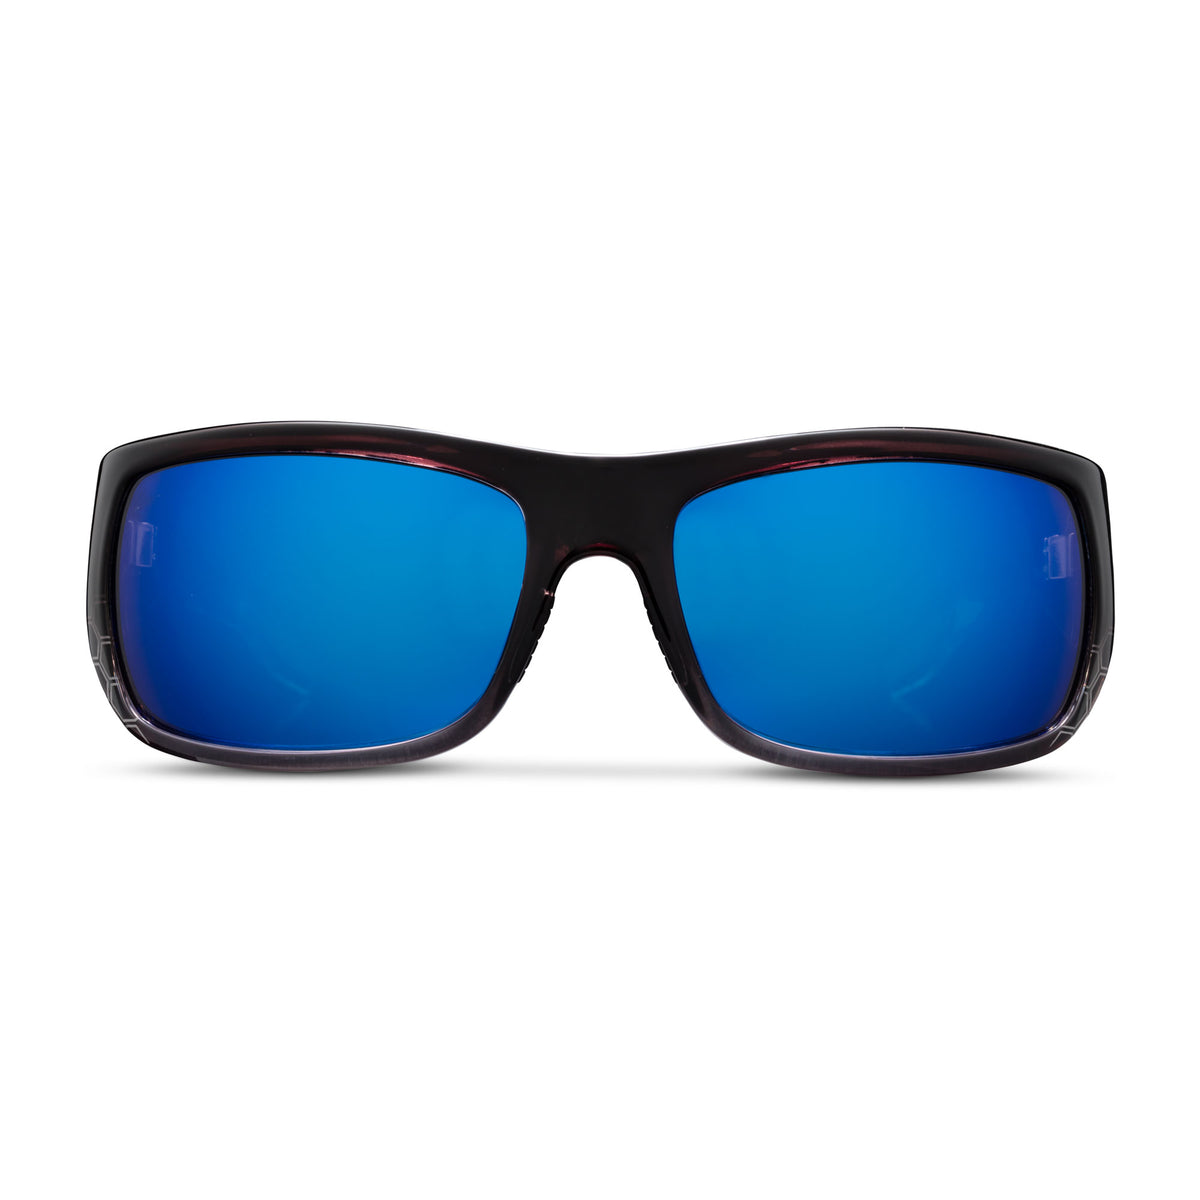 Fish Hook LTD - Polarized Mineral Glass™ Big Image - 2